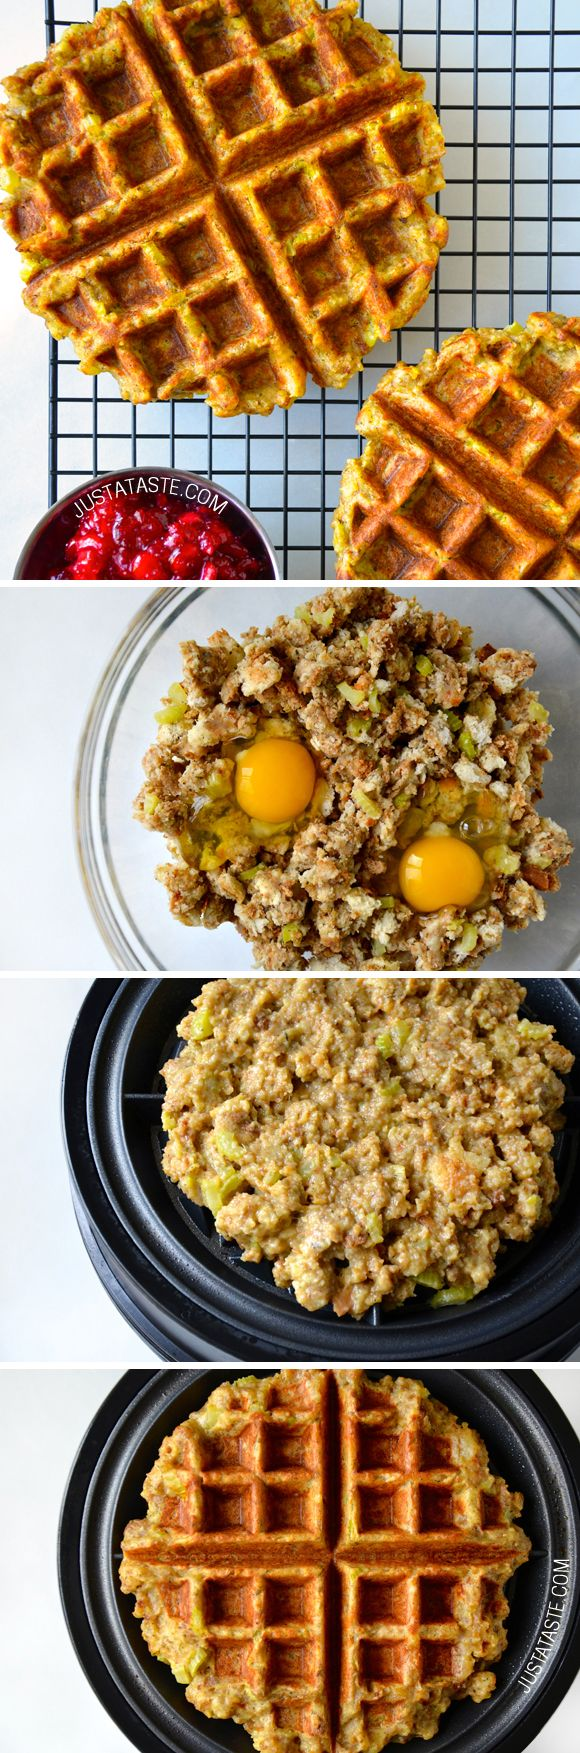 Leftover Stuffing Waffles #recipe from justataste.com: